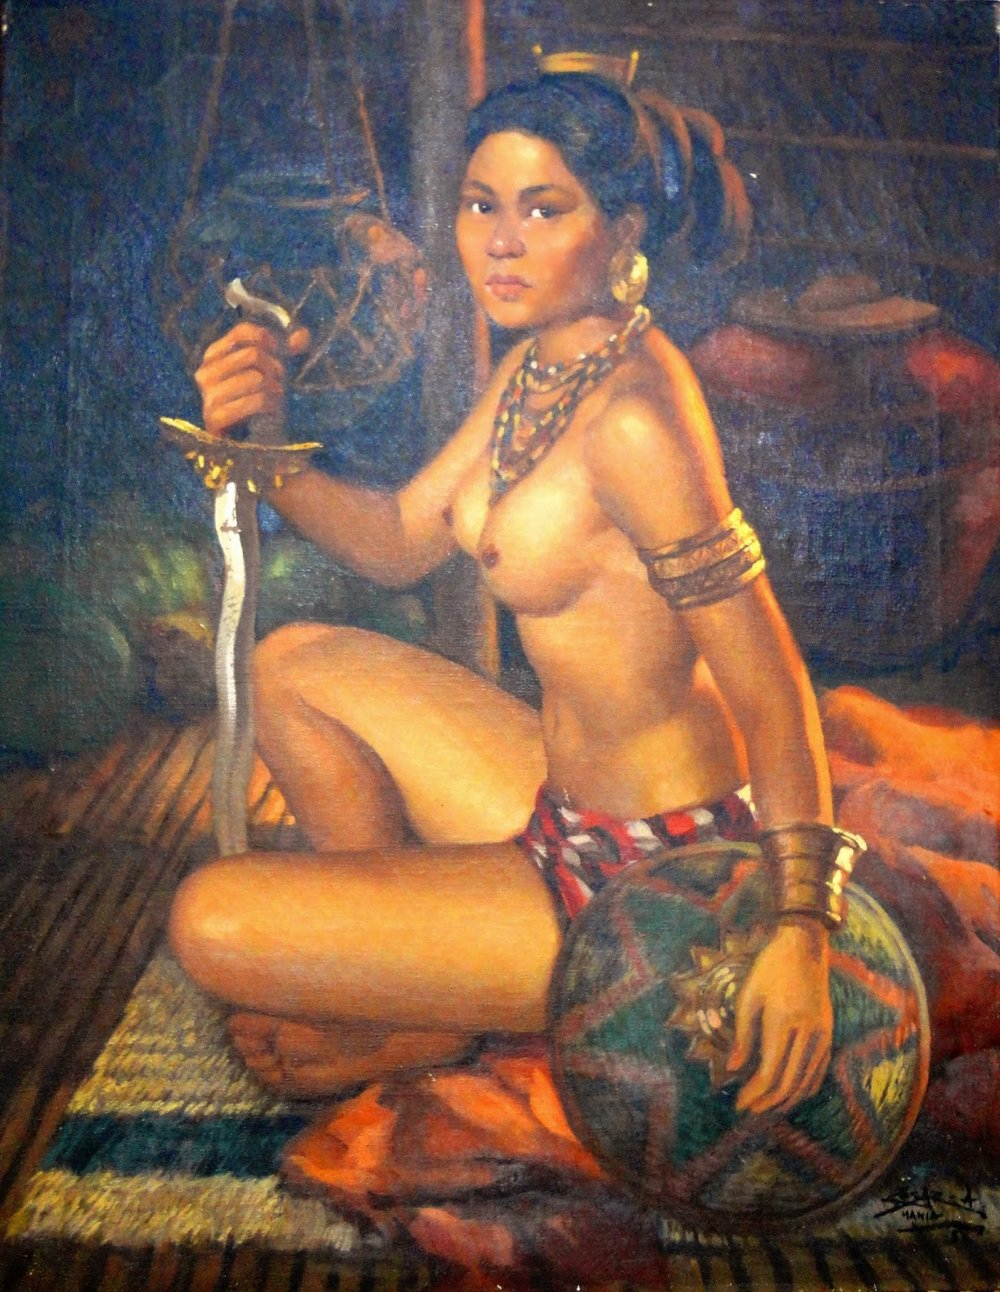 Oil painting of a native warrior princess by Cesar Amorsolo, 1956